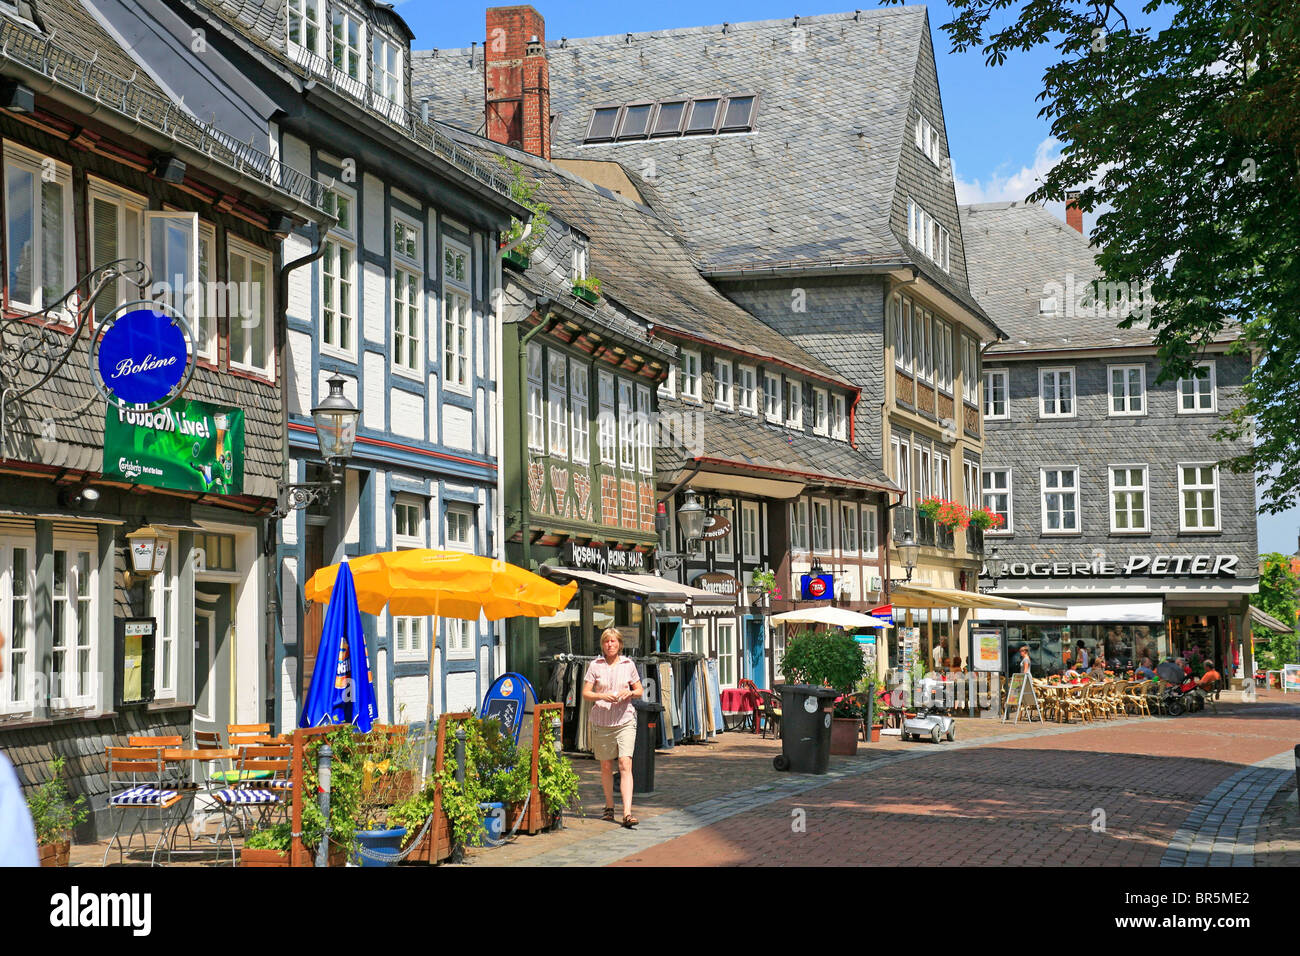 half-timbered houses in Goslar, Harz Mountains, Lower Saxony, Germany - Stock Image